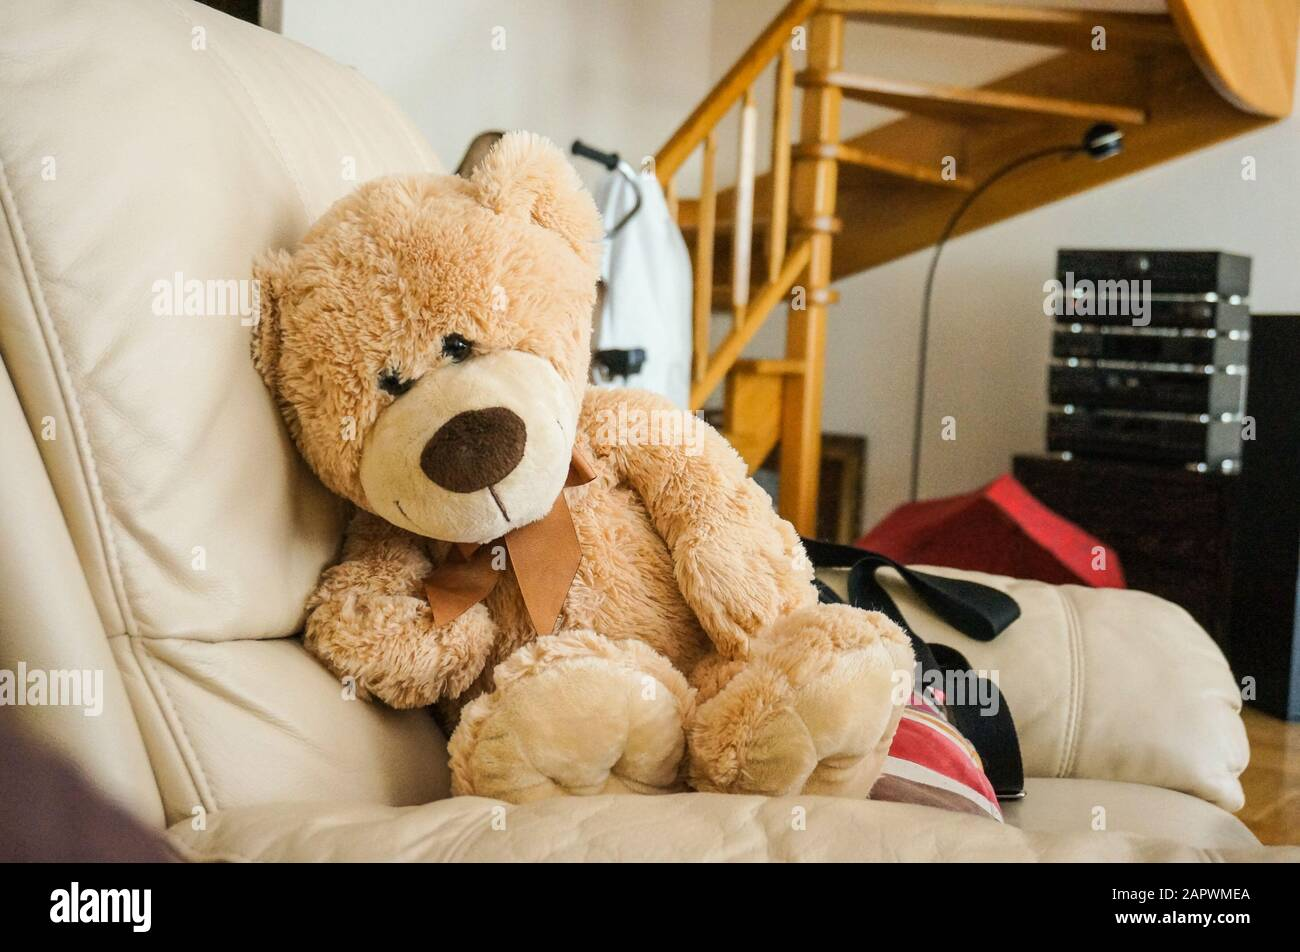 Hay Hay Chicken Stuffed Animal, A Big Fluffy Teddy Bear On The Couch Stock Photo Alamy